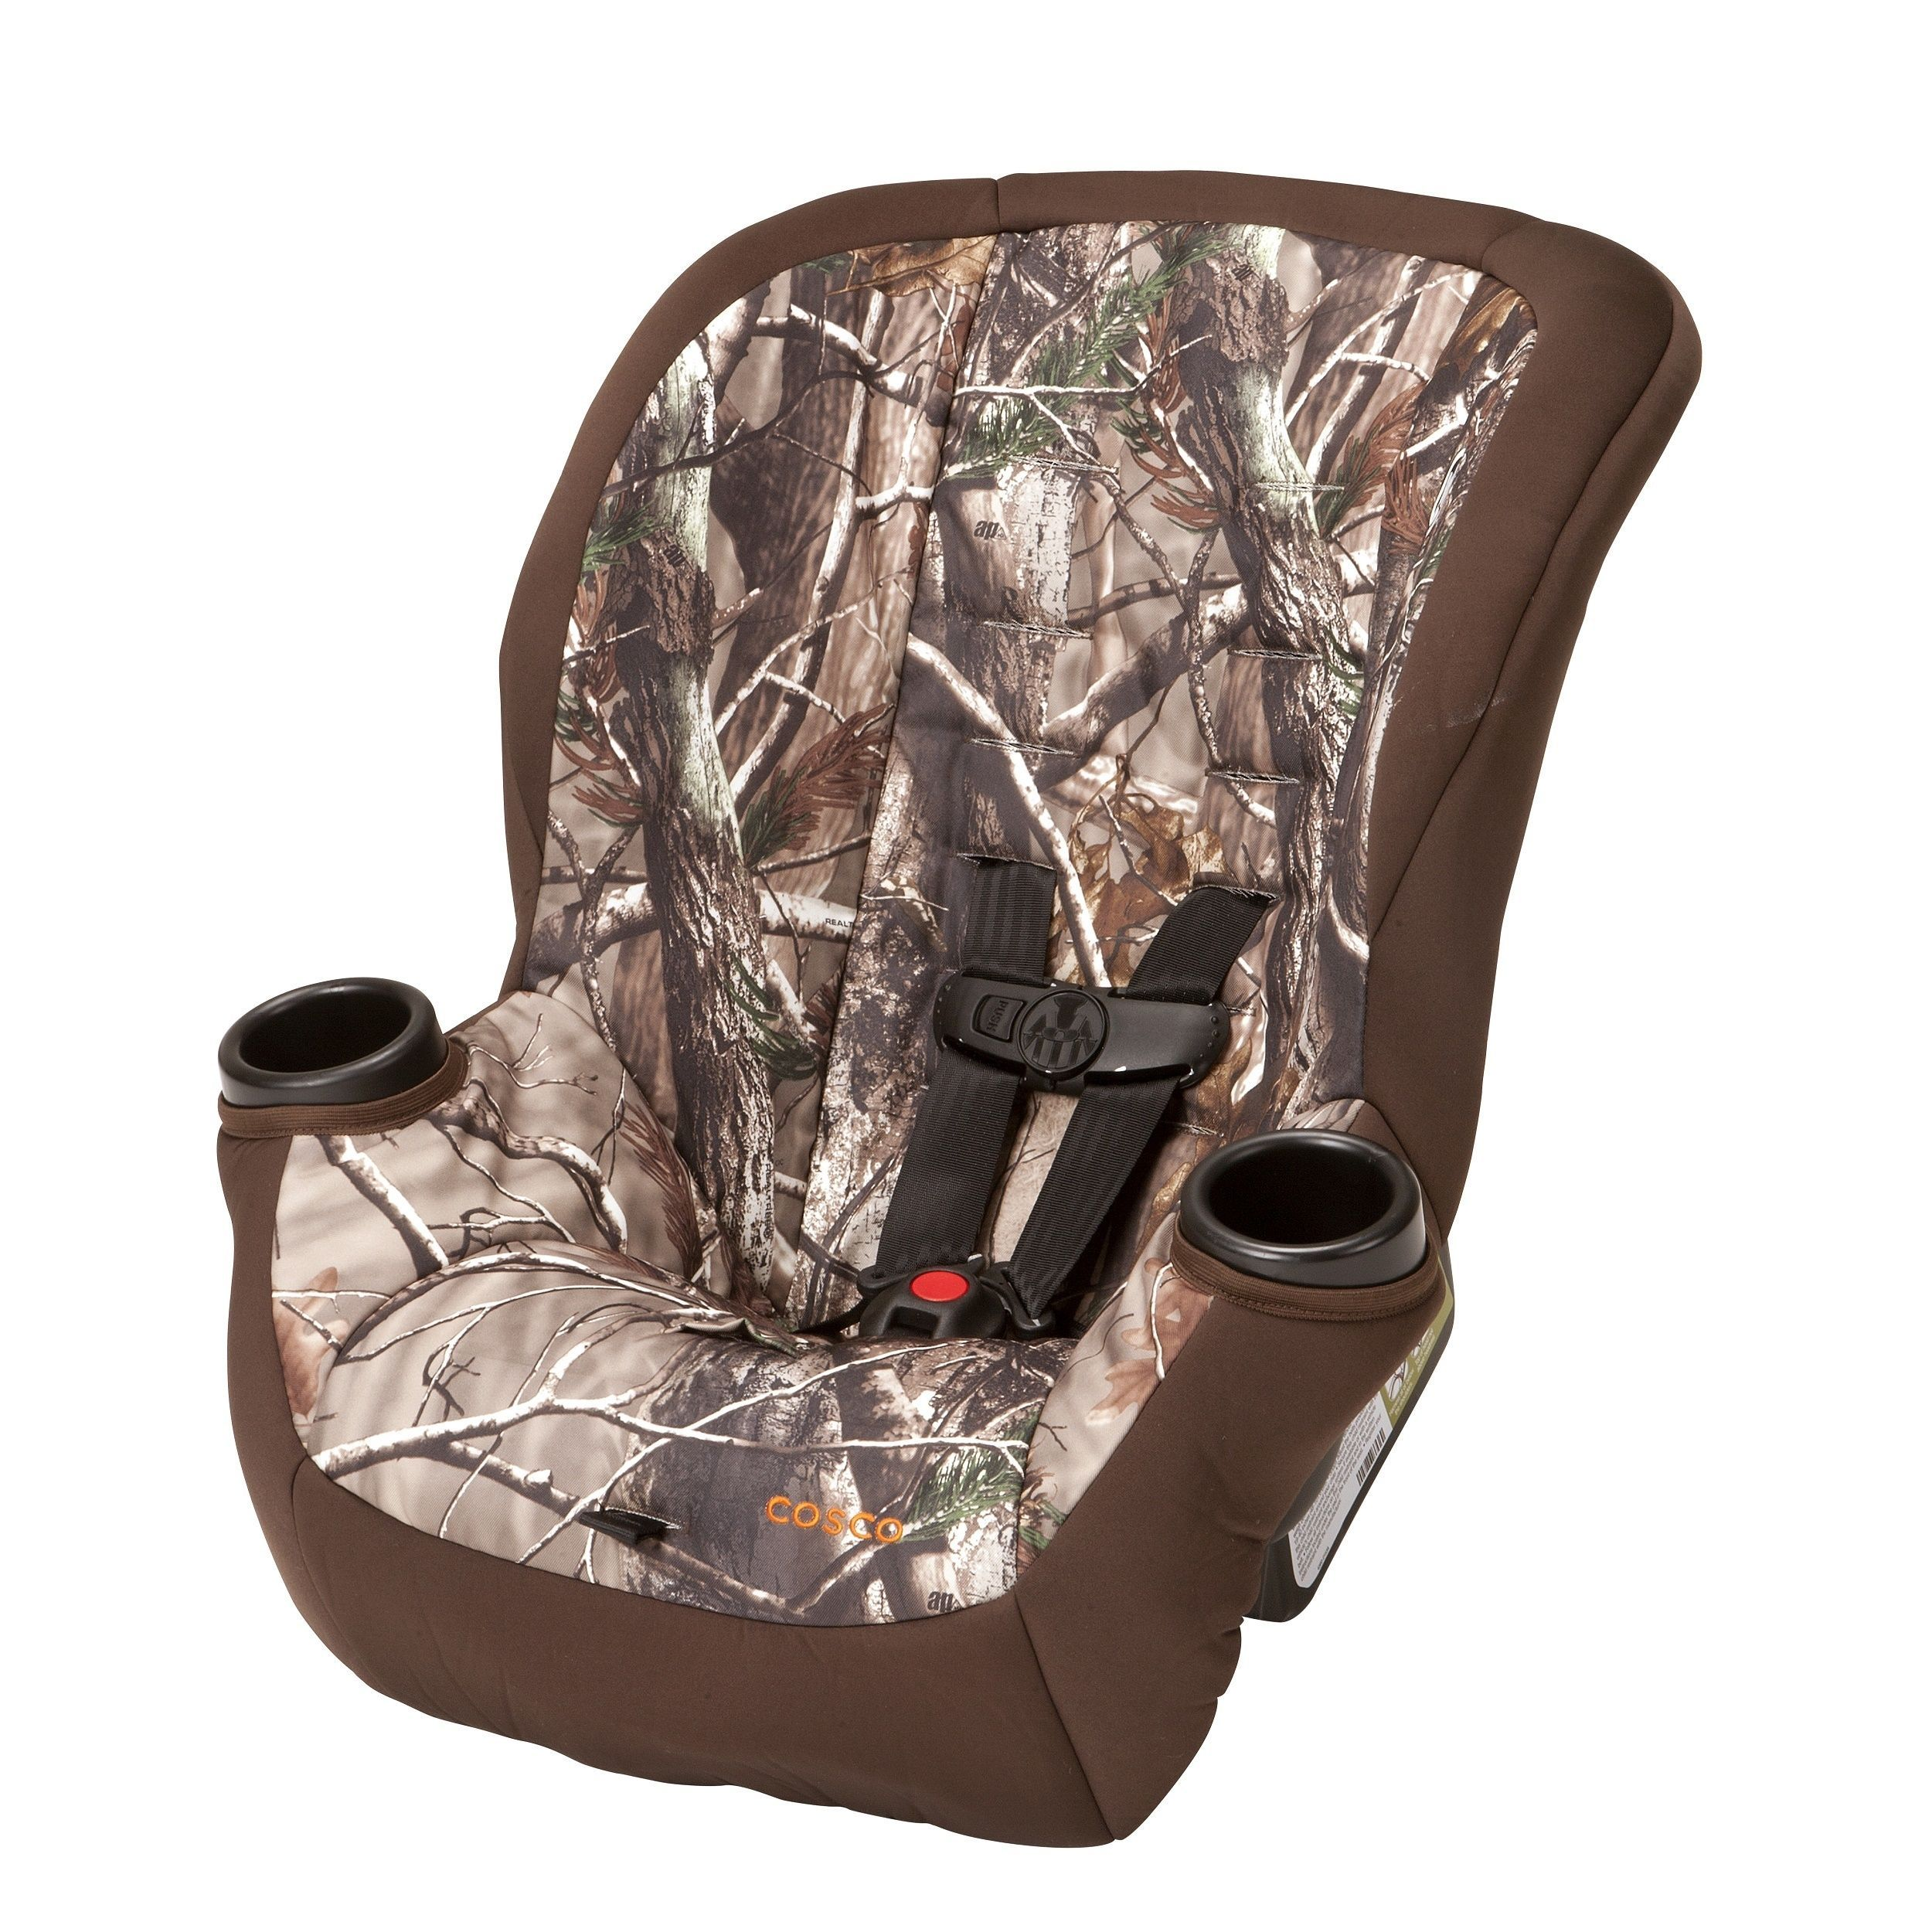 3c88fed54561d Cosco APT 50 Car Seat in Realtree